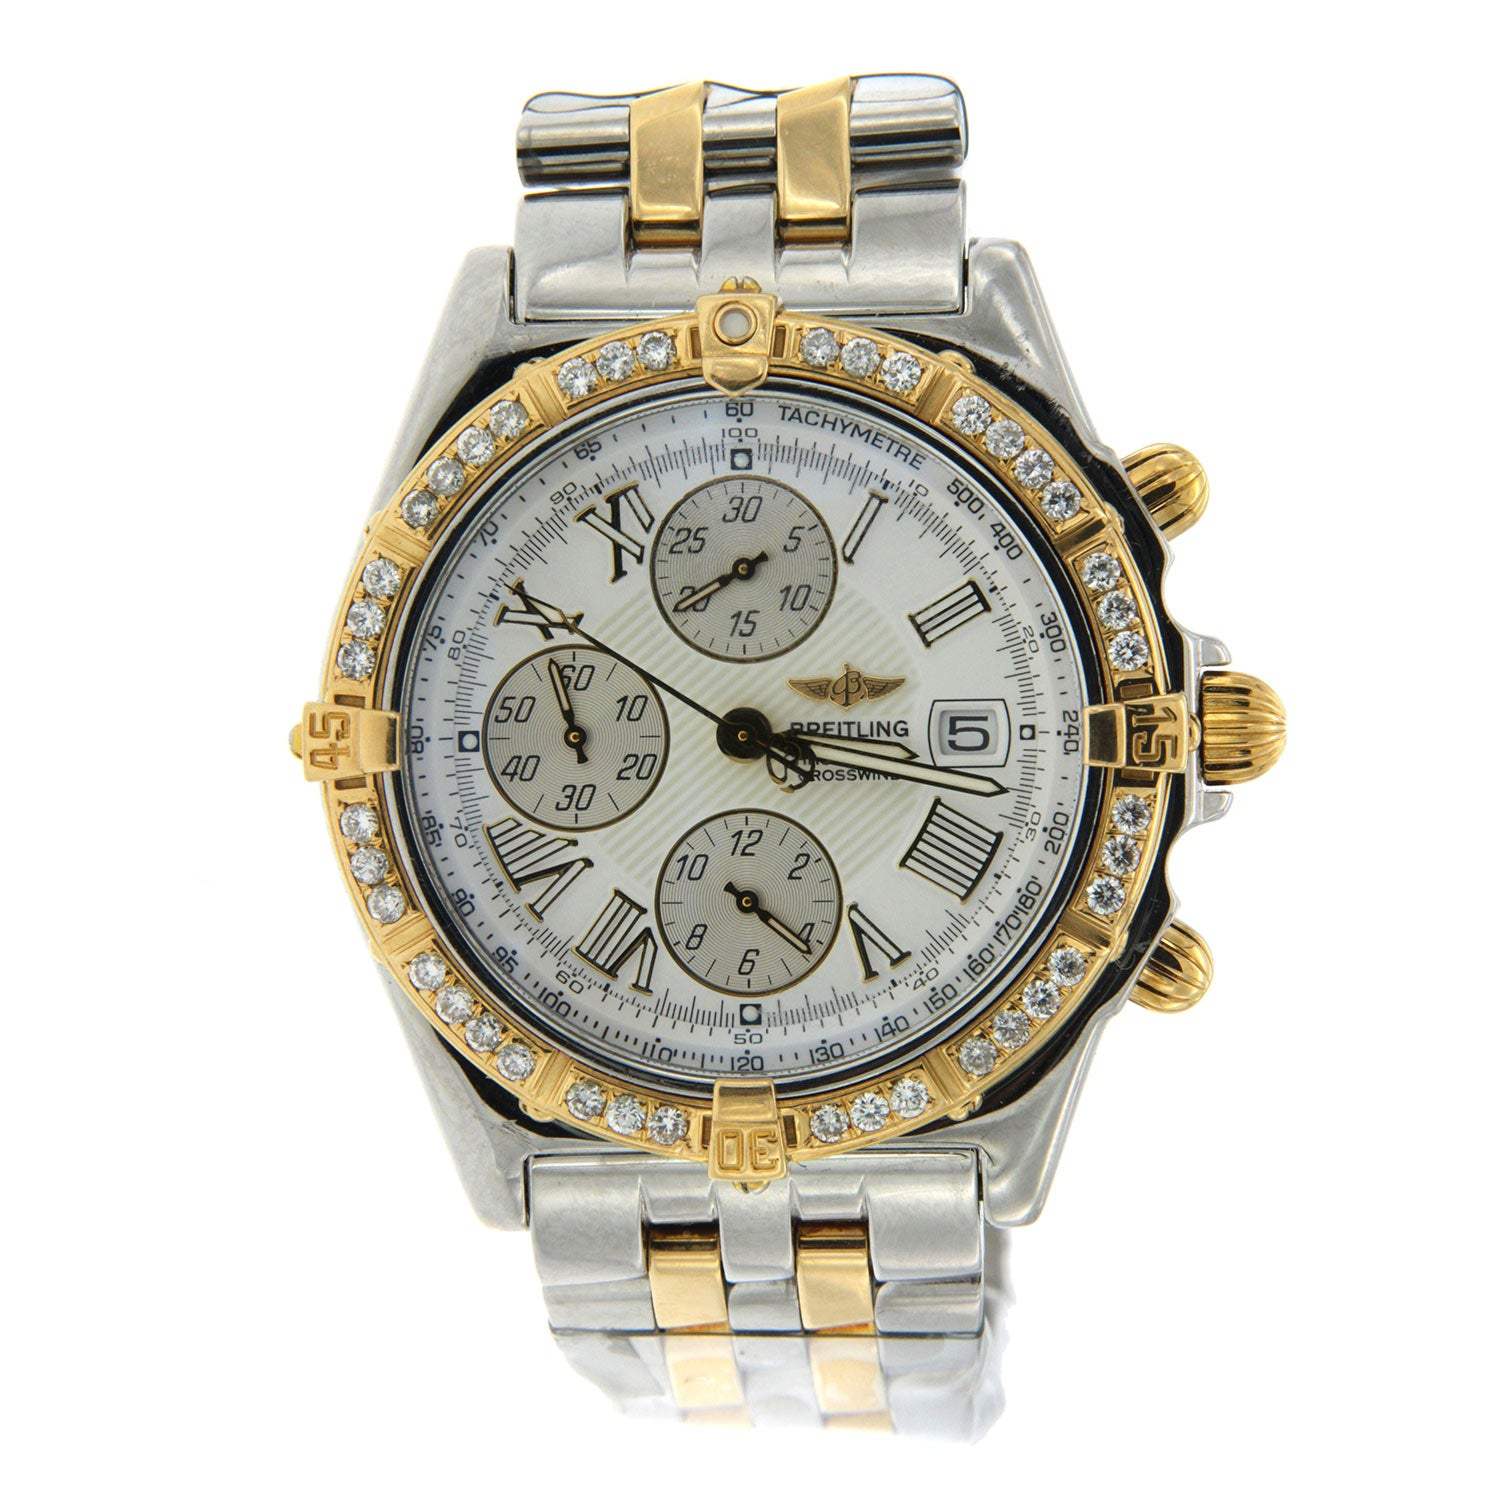 Breitling Crosswind Two Tone Diamond Watch